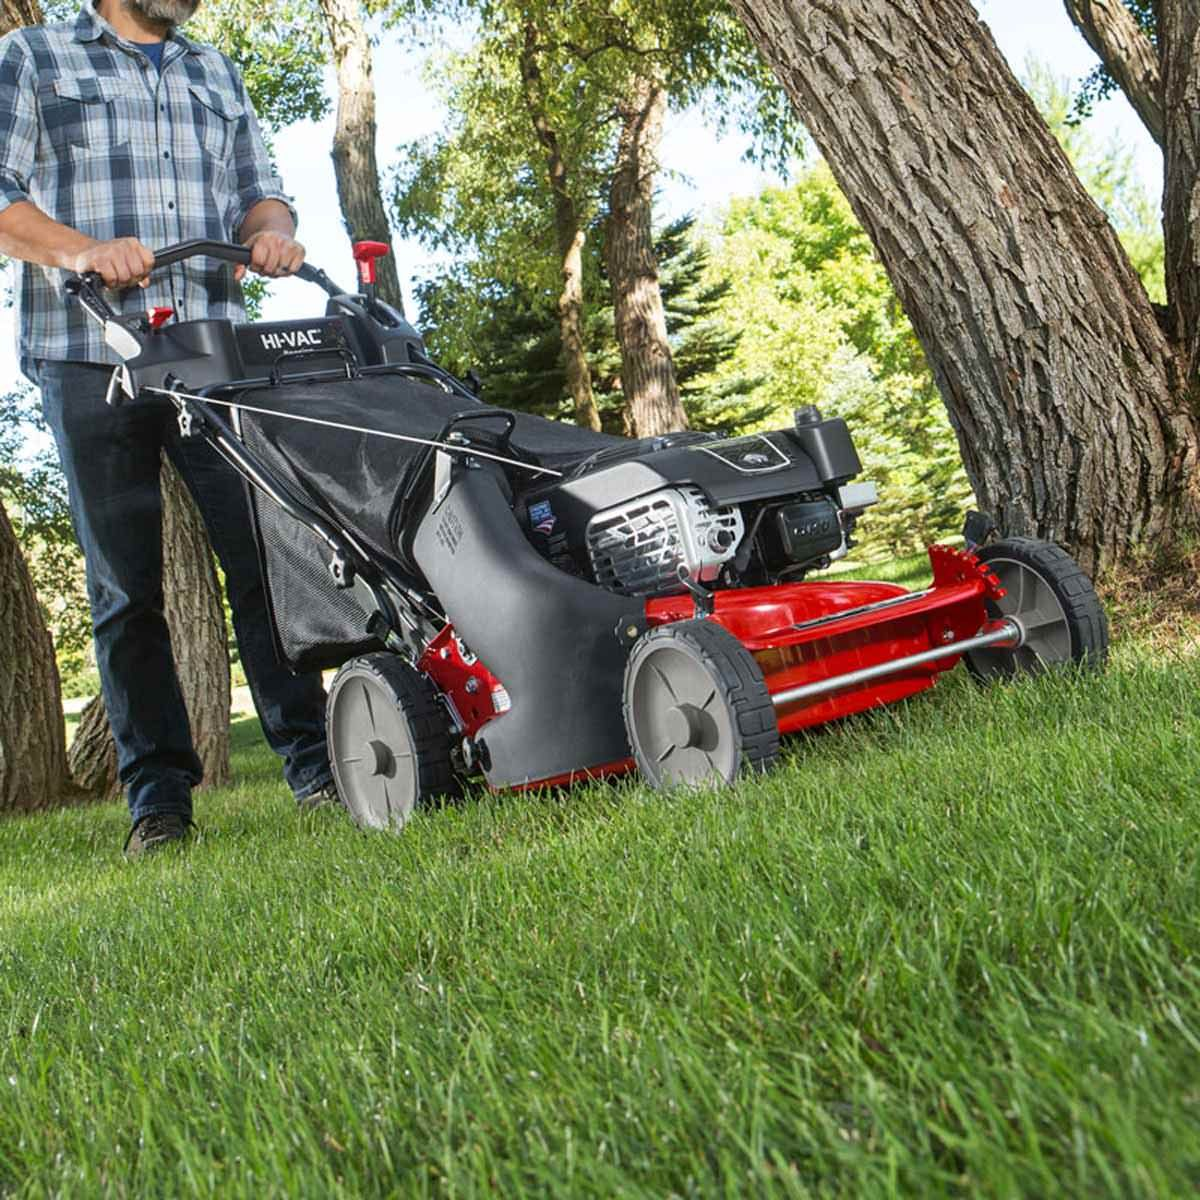 original.png snapper lawn mower self propelled lawn mower, self propelled mower, self propelled lawn mowers